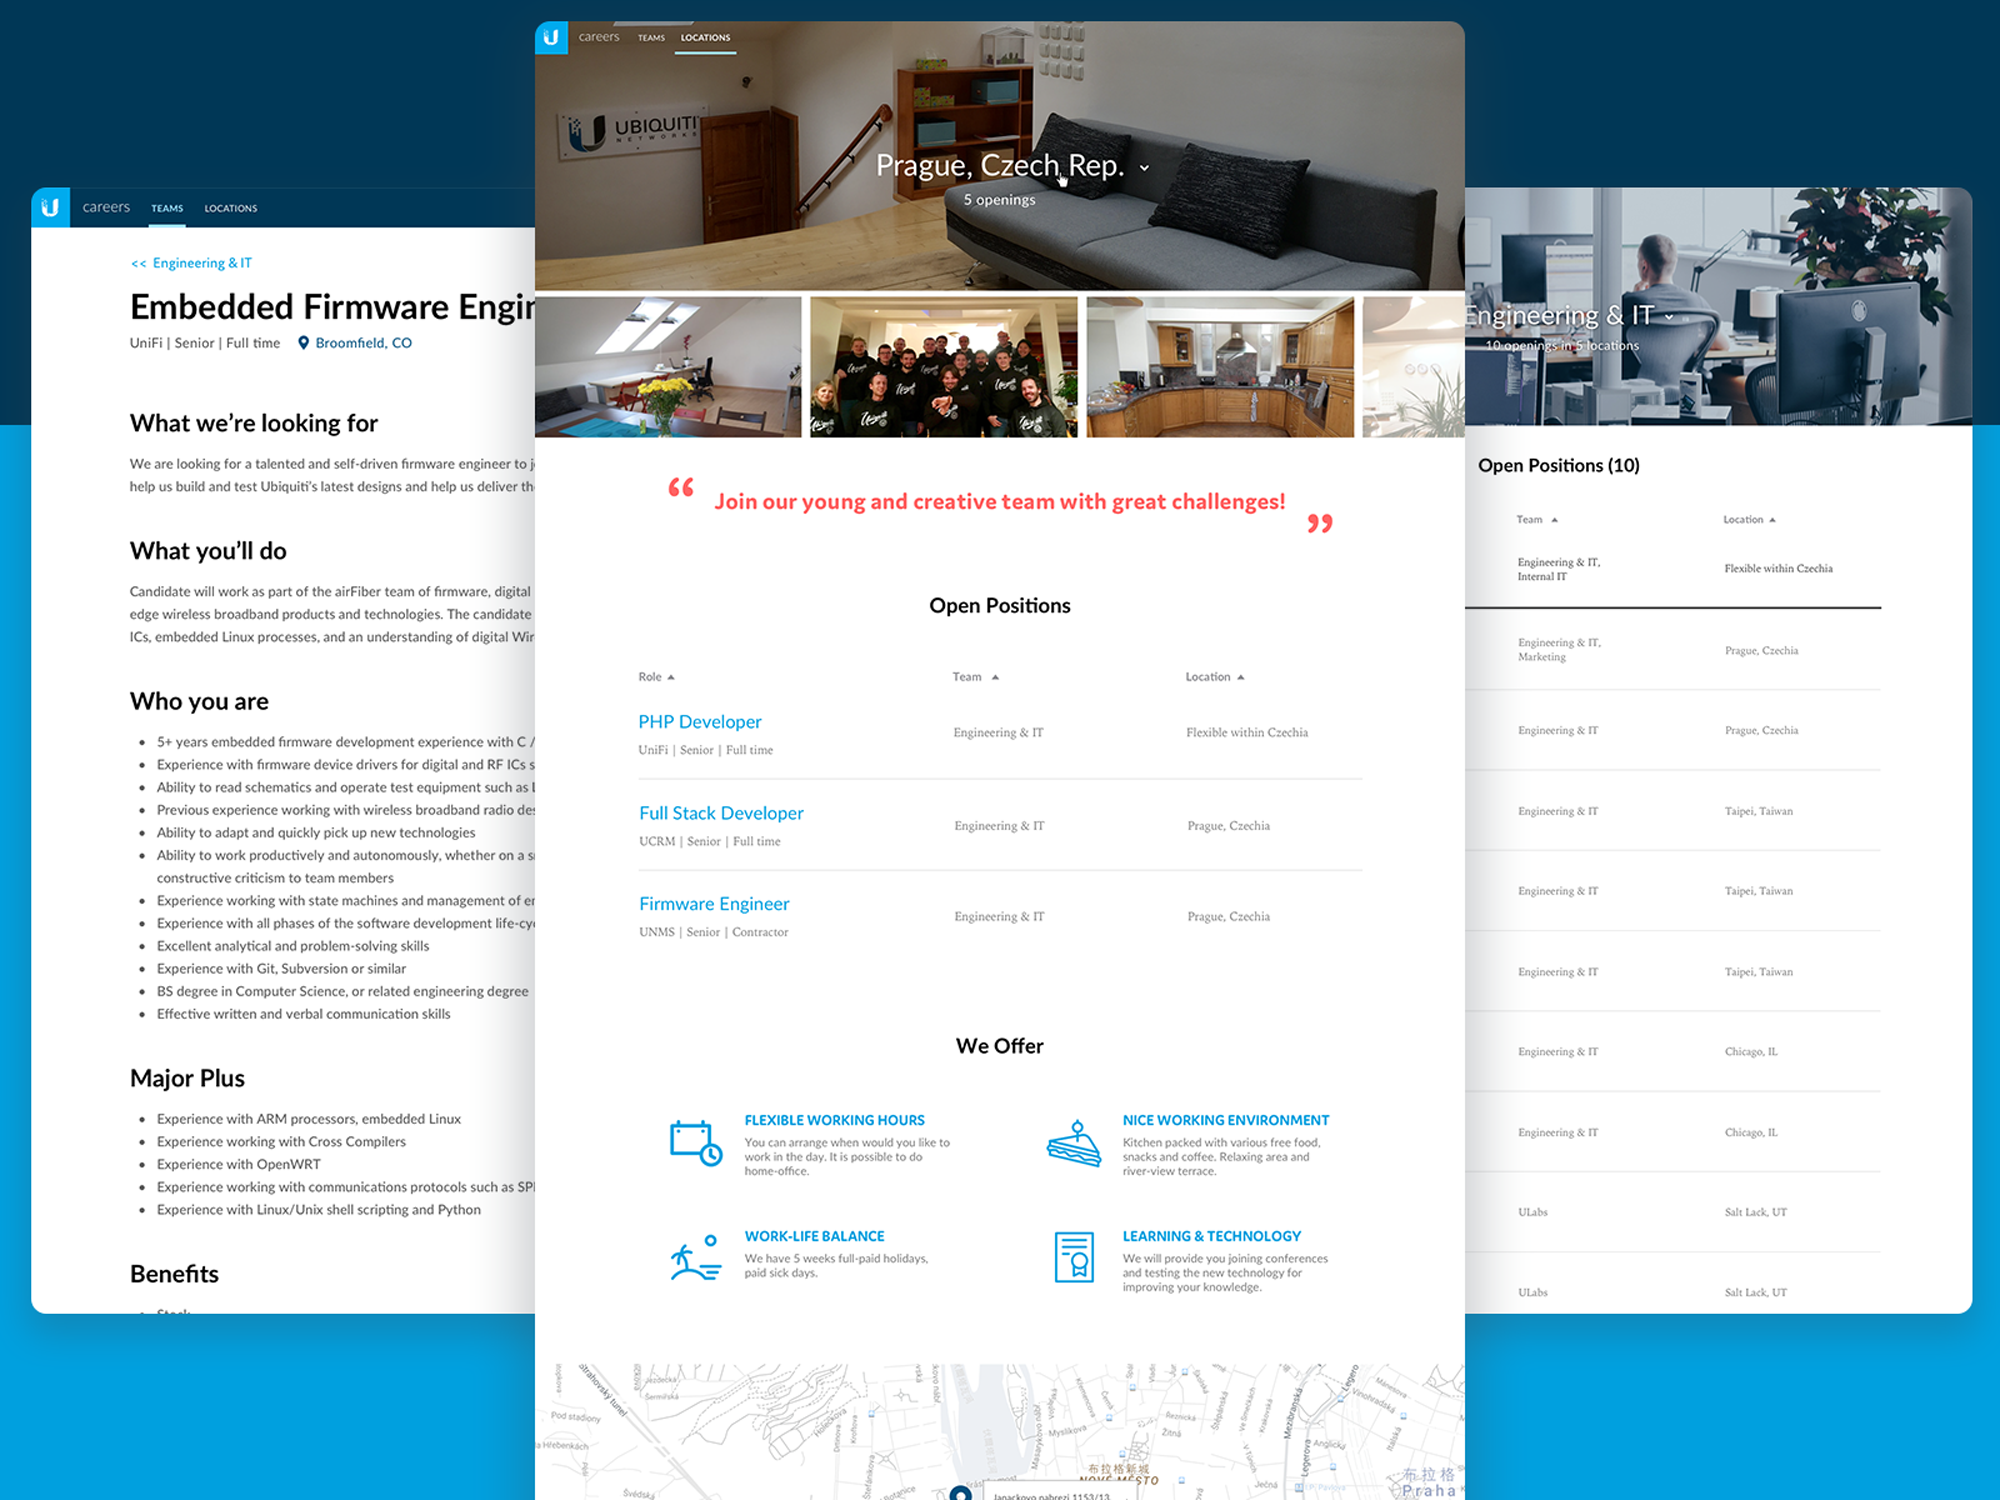 Ubiquiti Career Page - Office by Sarah chen on Dribbble